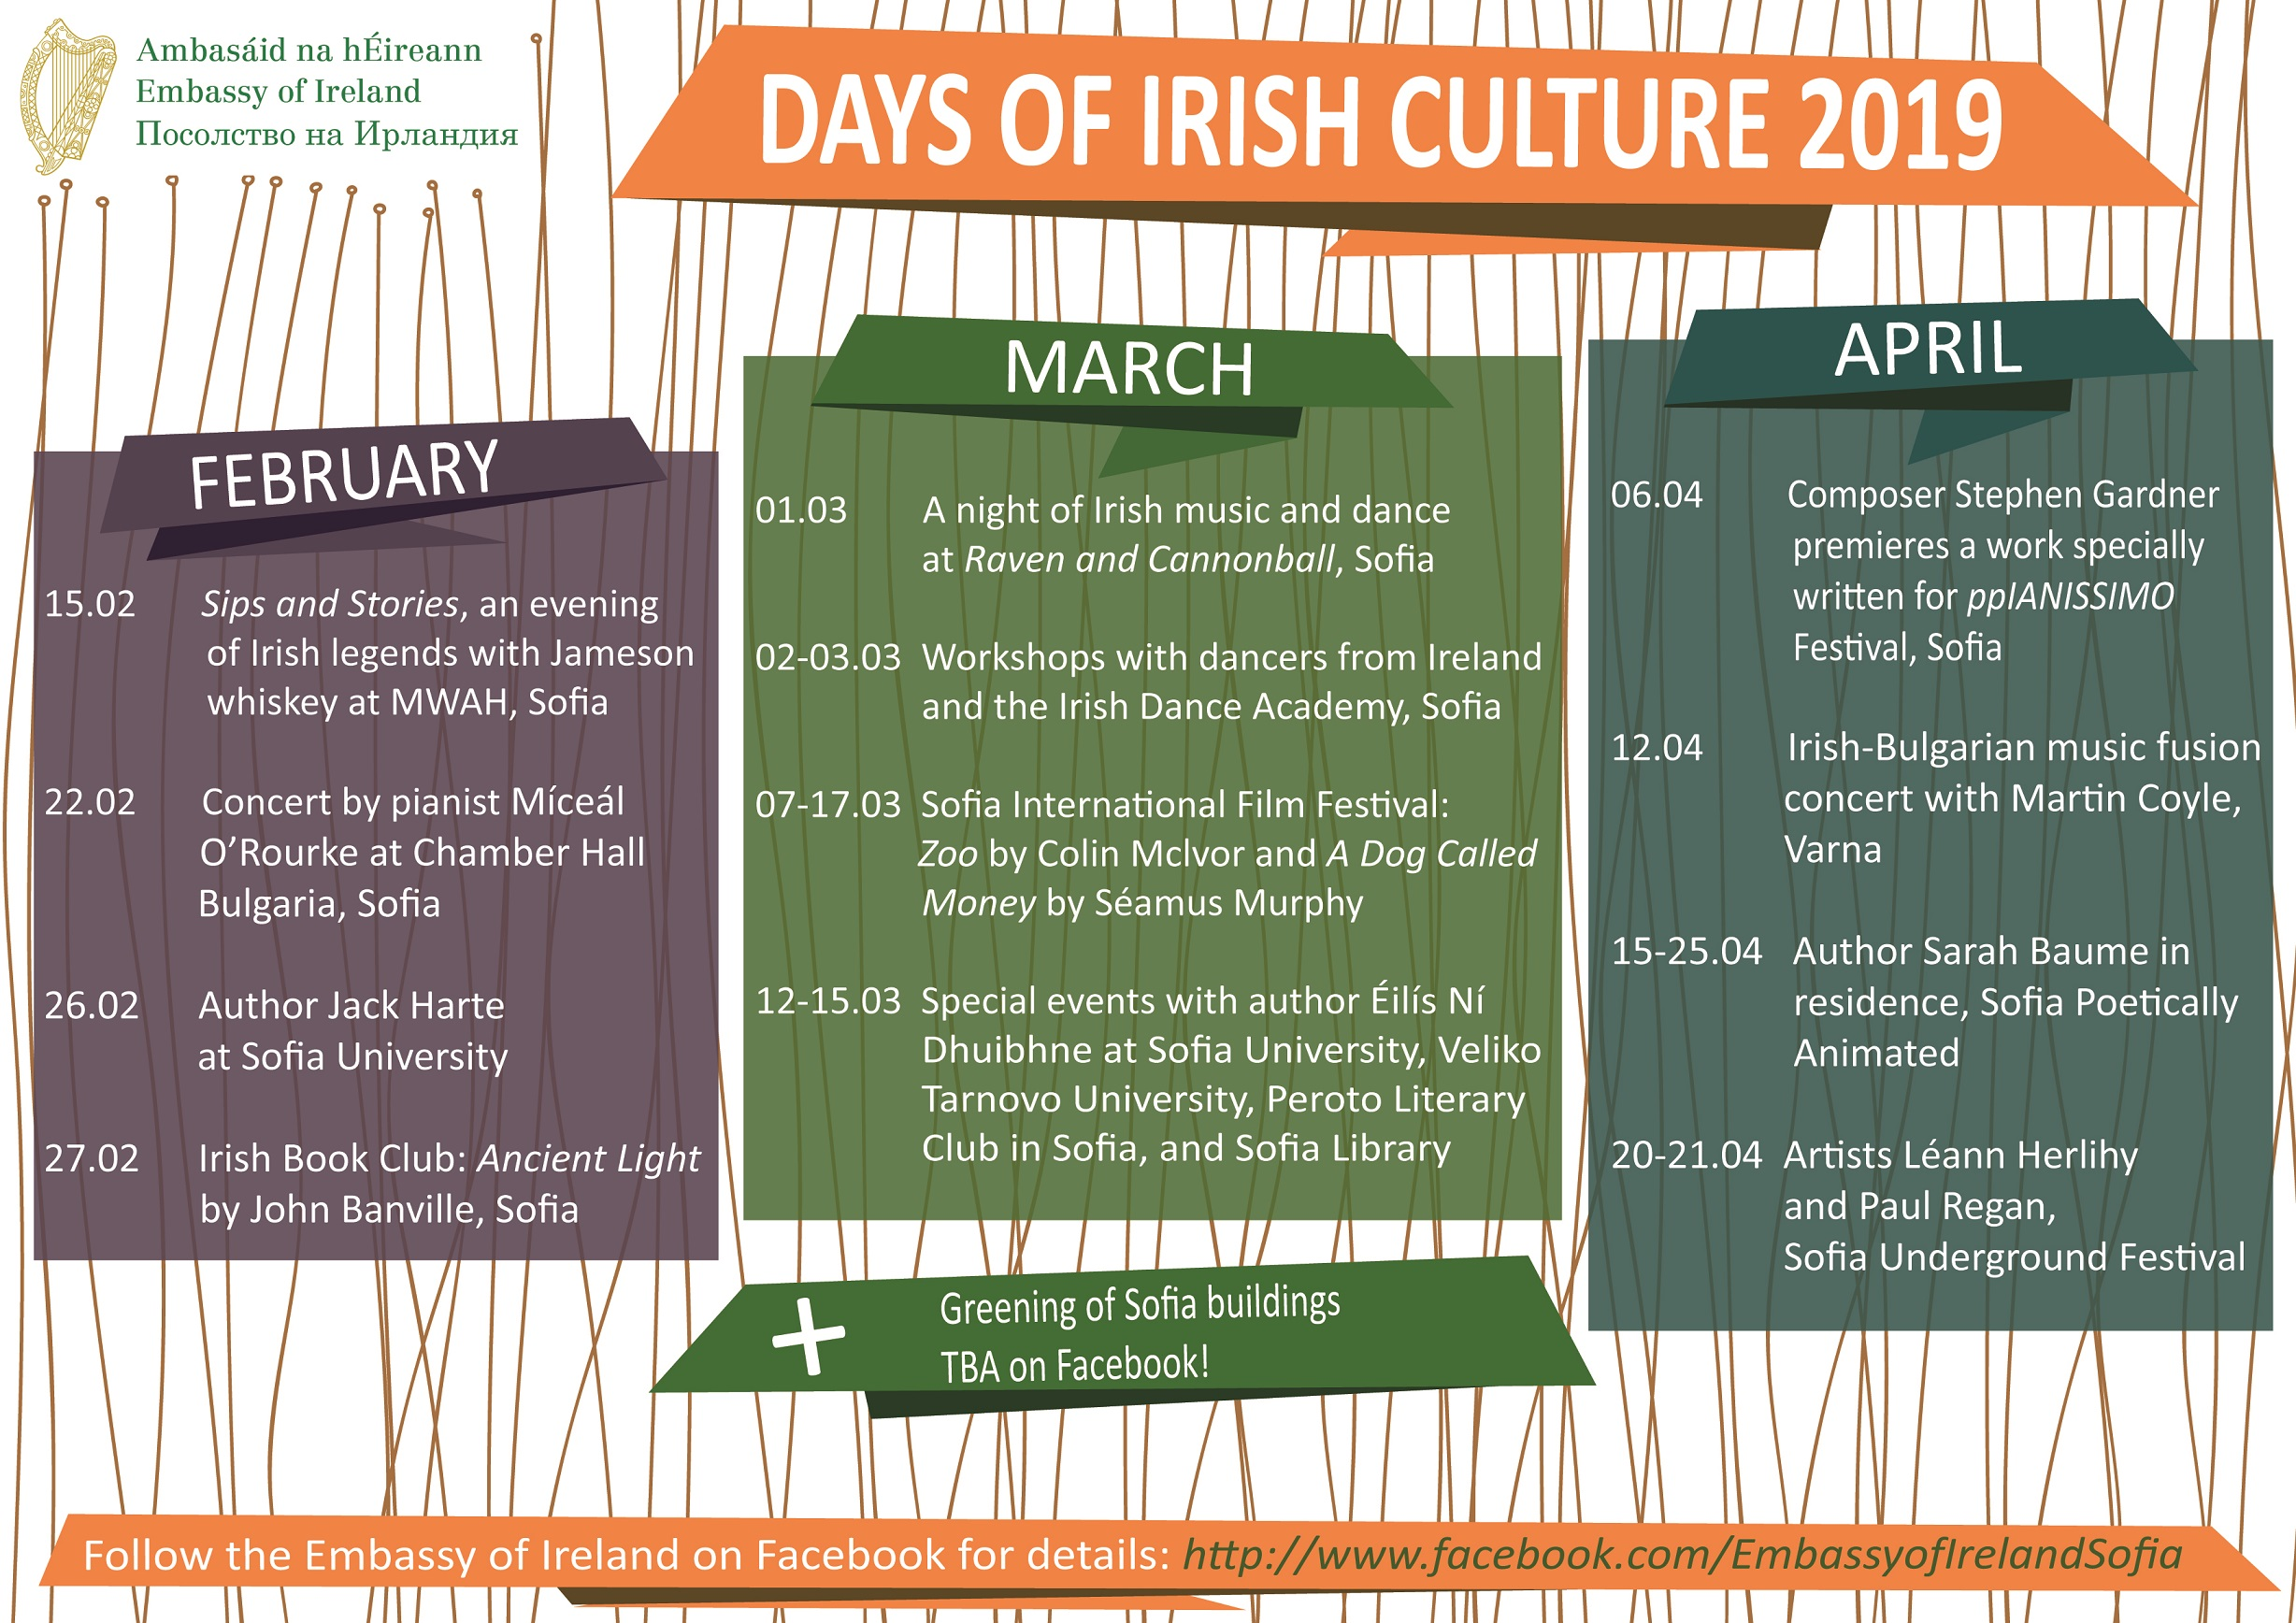 The Embassy of Ireland celebrates St Patrick's Day with special events